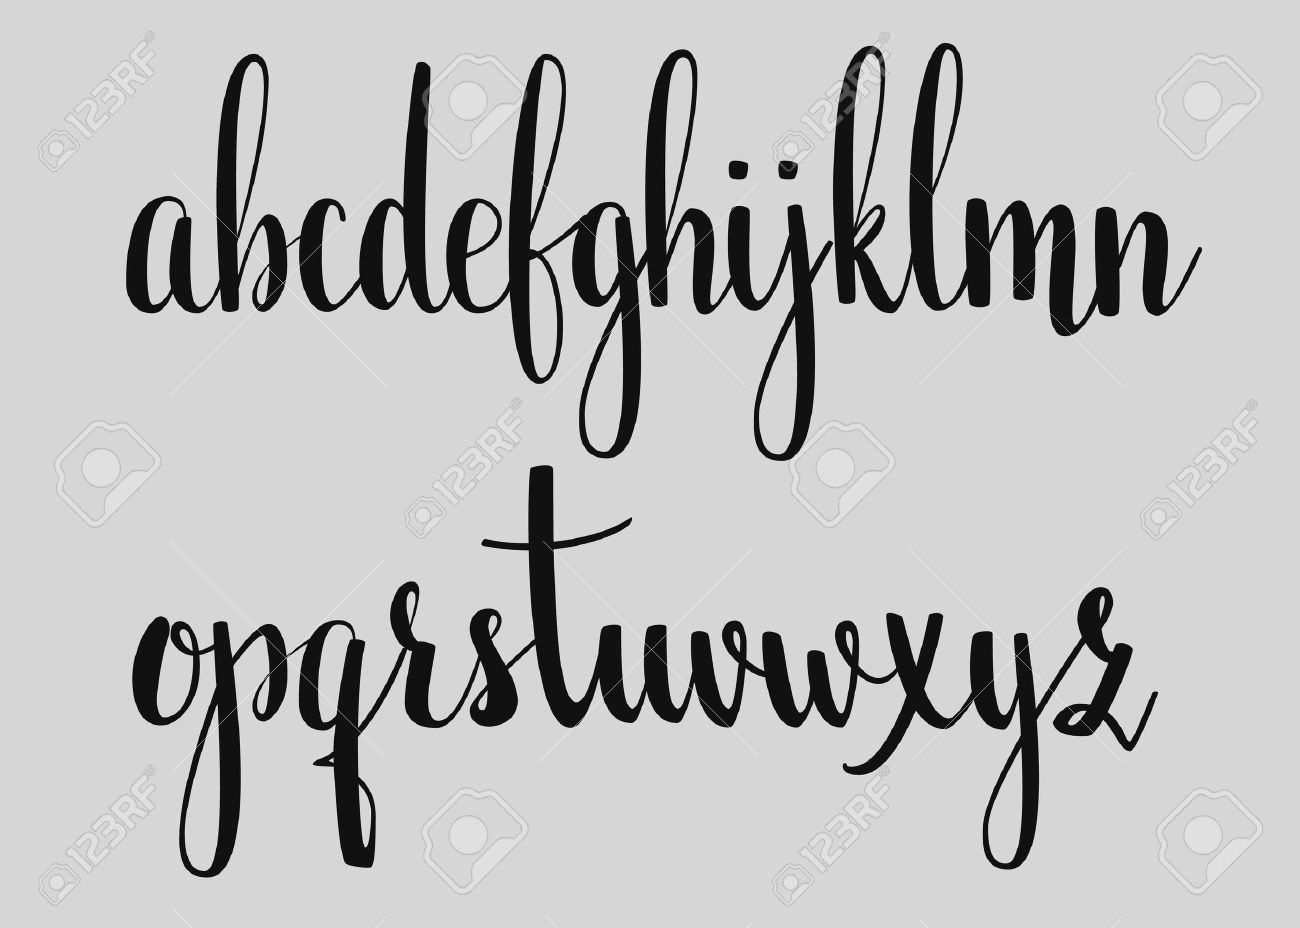 Handwritten Brush Style Modern Calligraphy Cursive Font Alphabet Cute Letters For